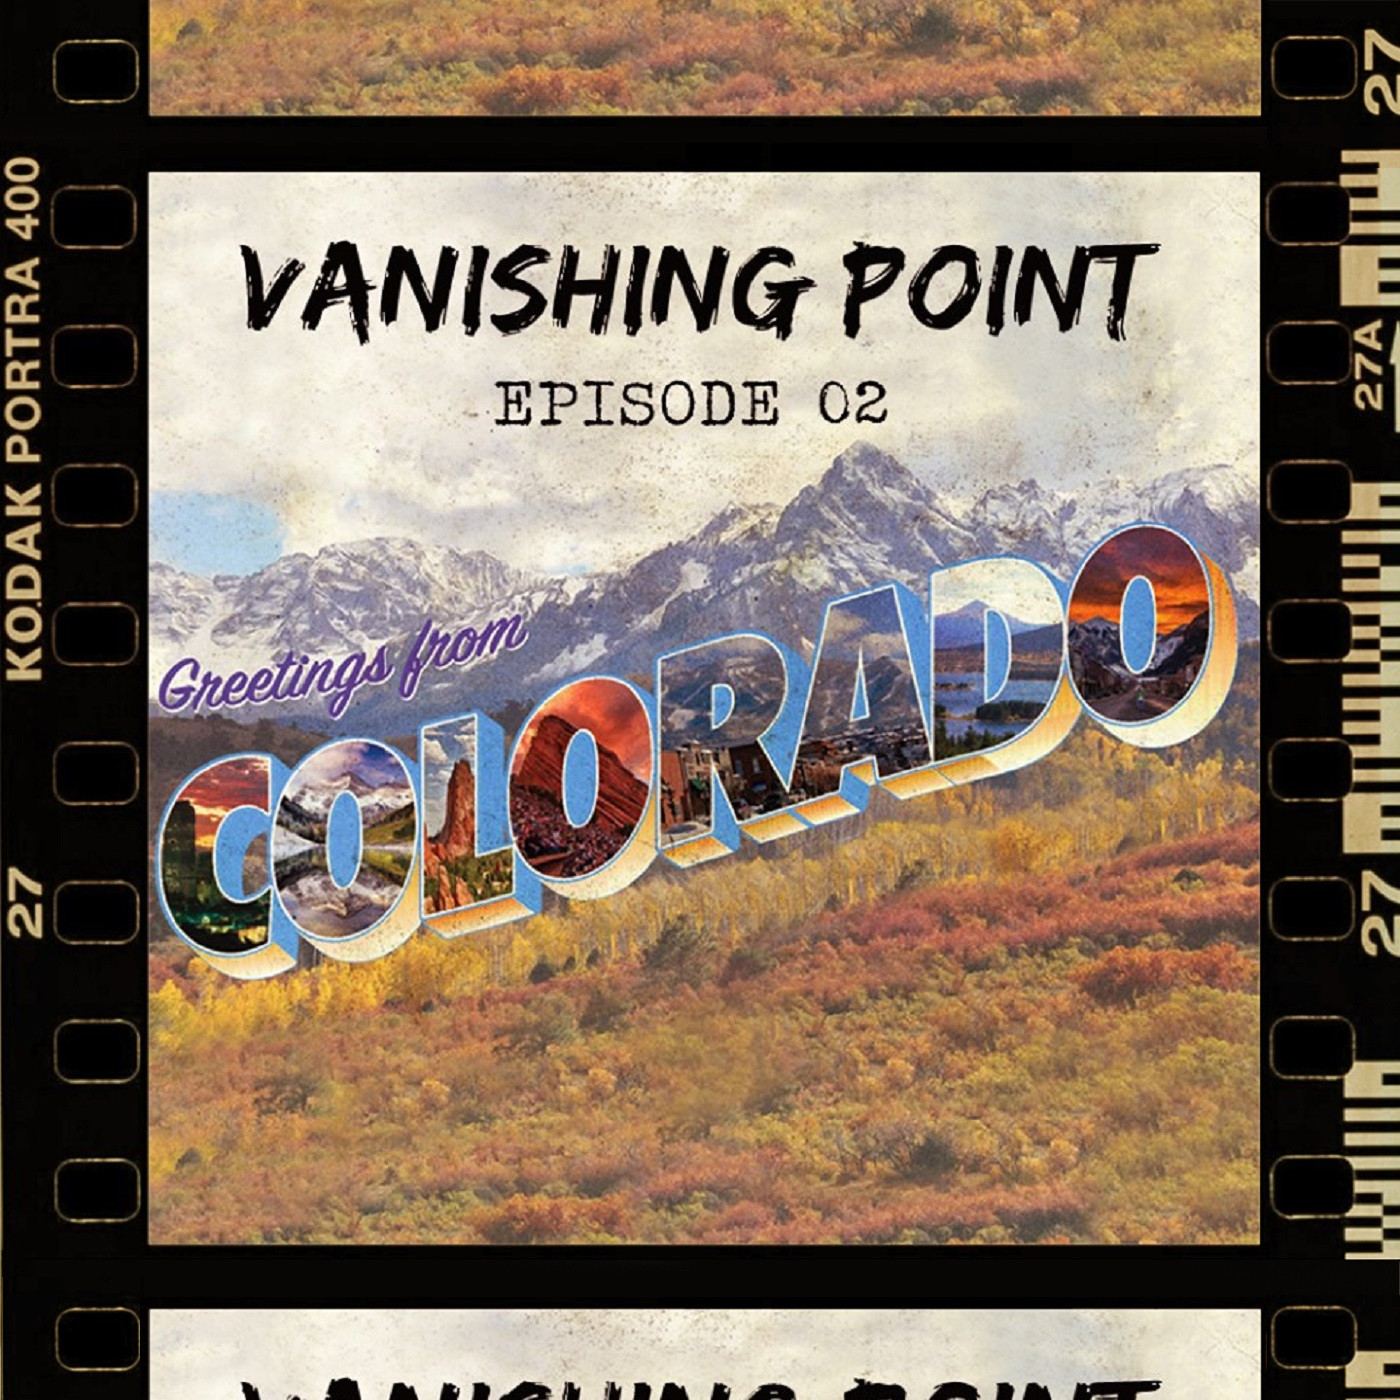 VANISHING POINT #2 - Greetings from Colorado